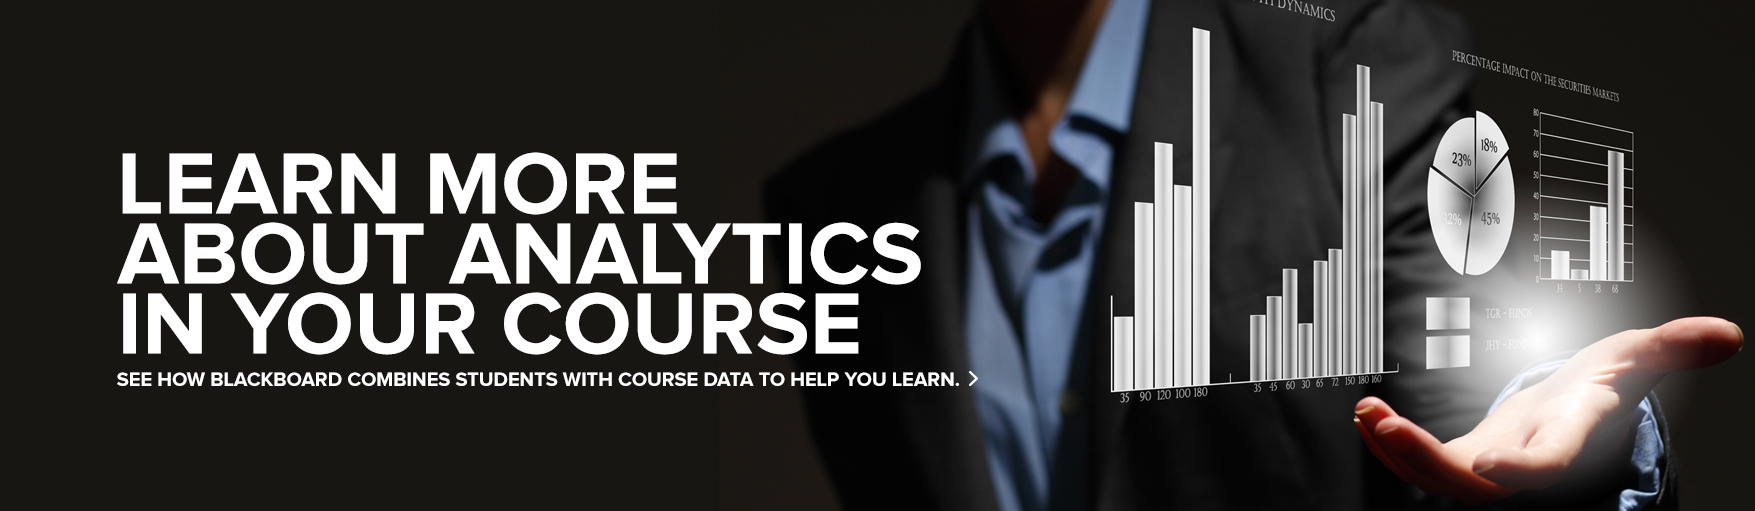 Learn more about analytics in your course